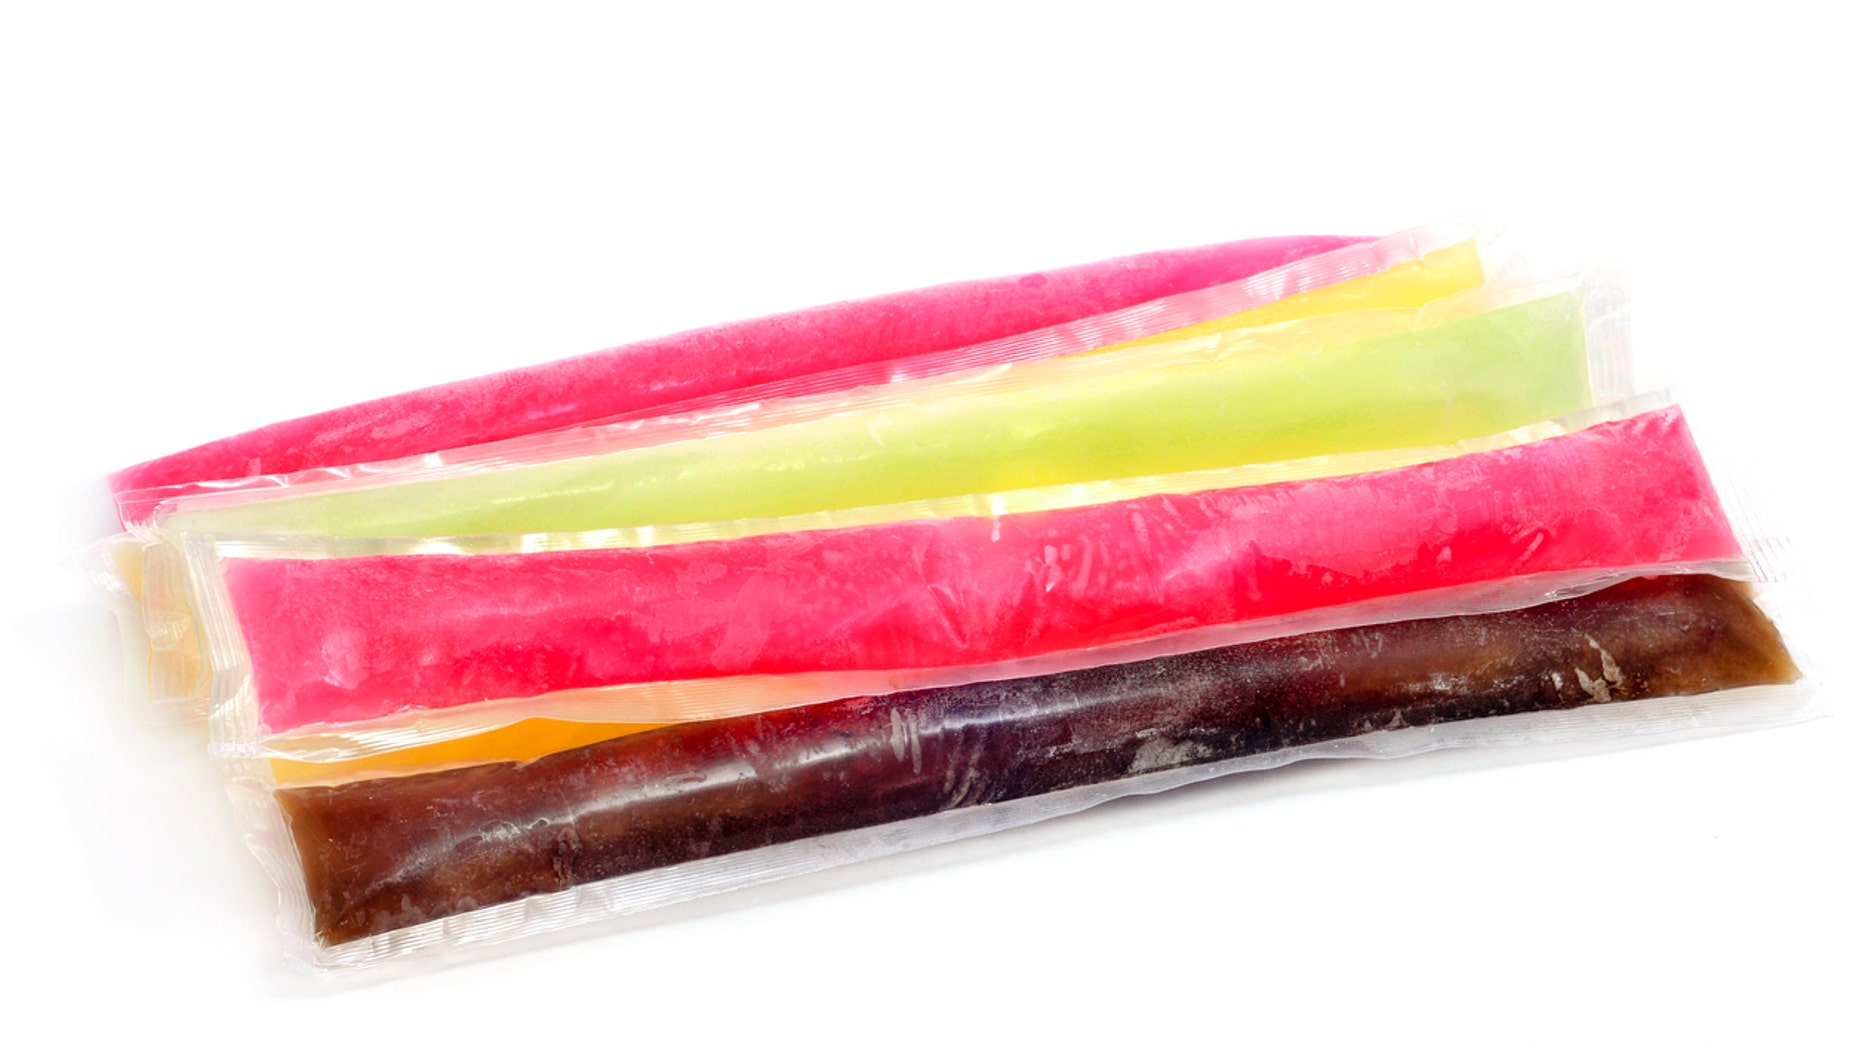 What do you call the clear plastic tubes of bright, sweet, fruity frozen ice? You know, the ones that are always displayed en masse at the front of the grocery store as soon as it hits 75 degrees?